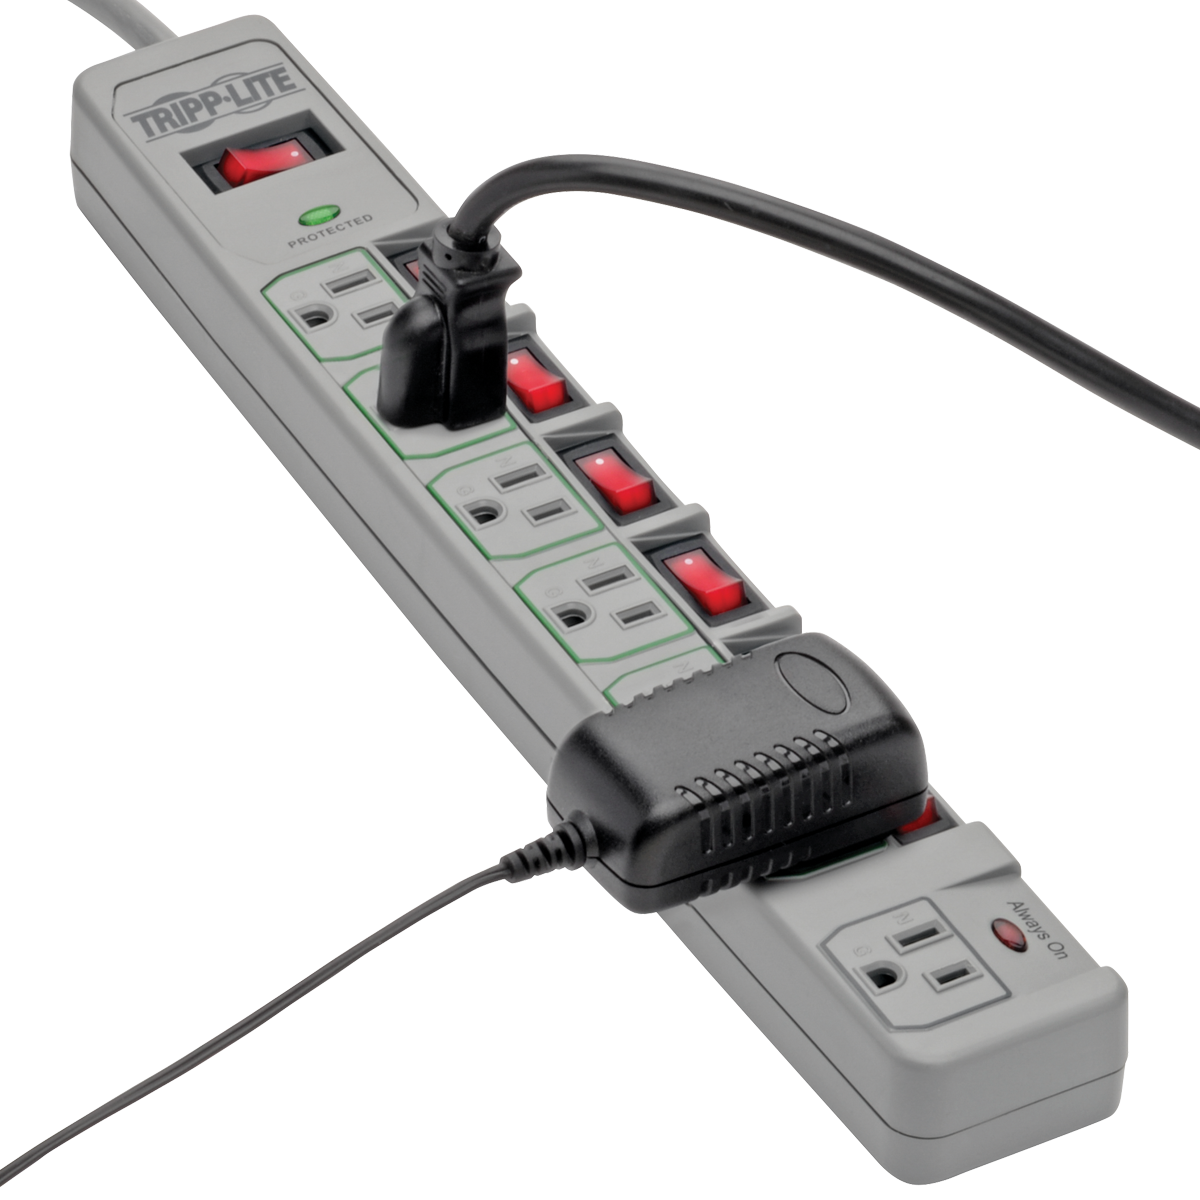 Tripp Lite 7 Outlet Surge Protector Power Strip 6 Feet Cord 1080 Icing Kit Further Master Appliance Heat Gun On 120v Tape Wiring Media